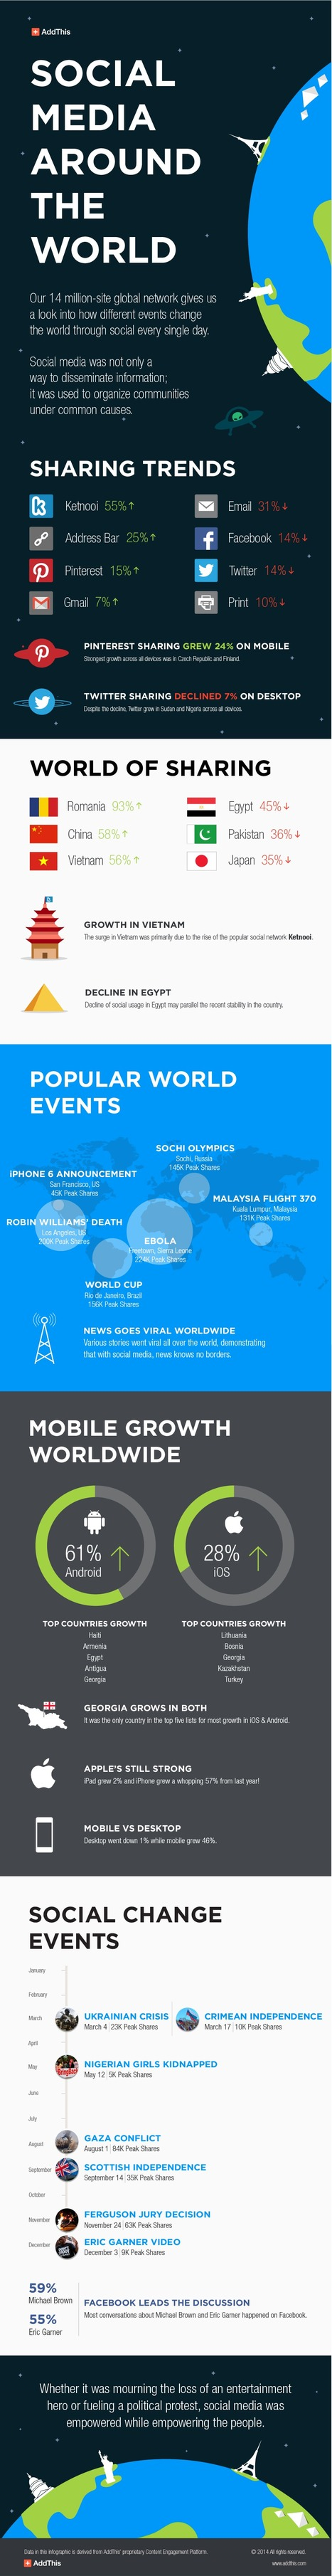 The World of Social Media 2014: Statistics, Facts & Figures | Social Media Useful Info | Scoop.it